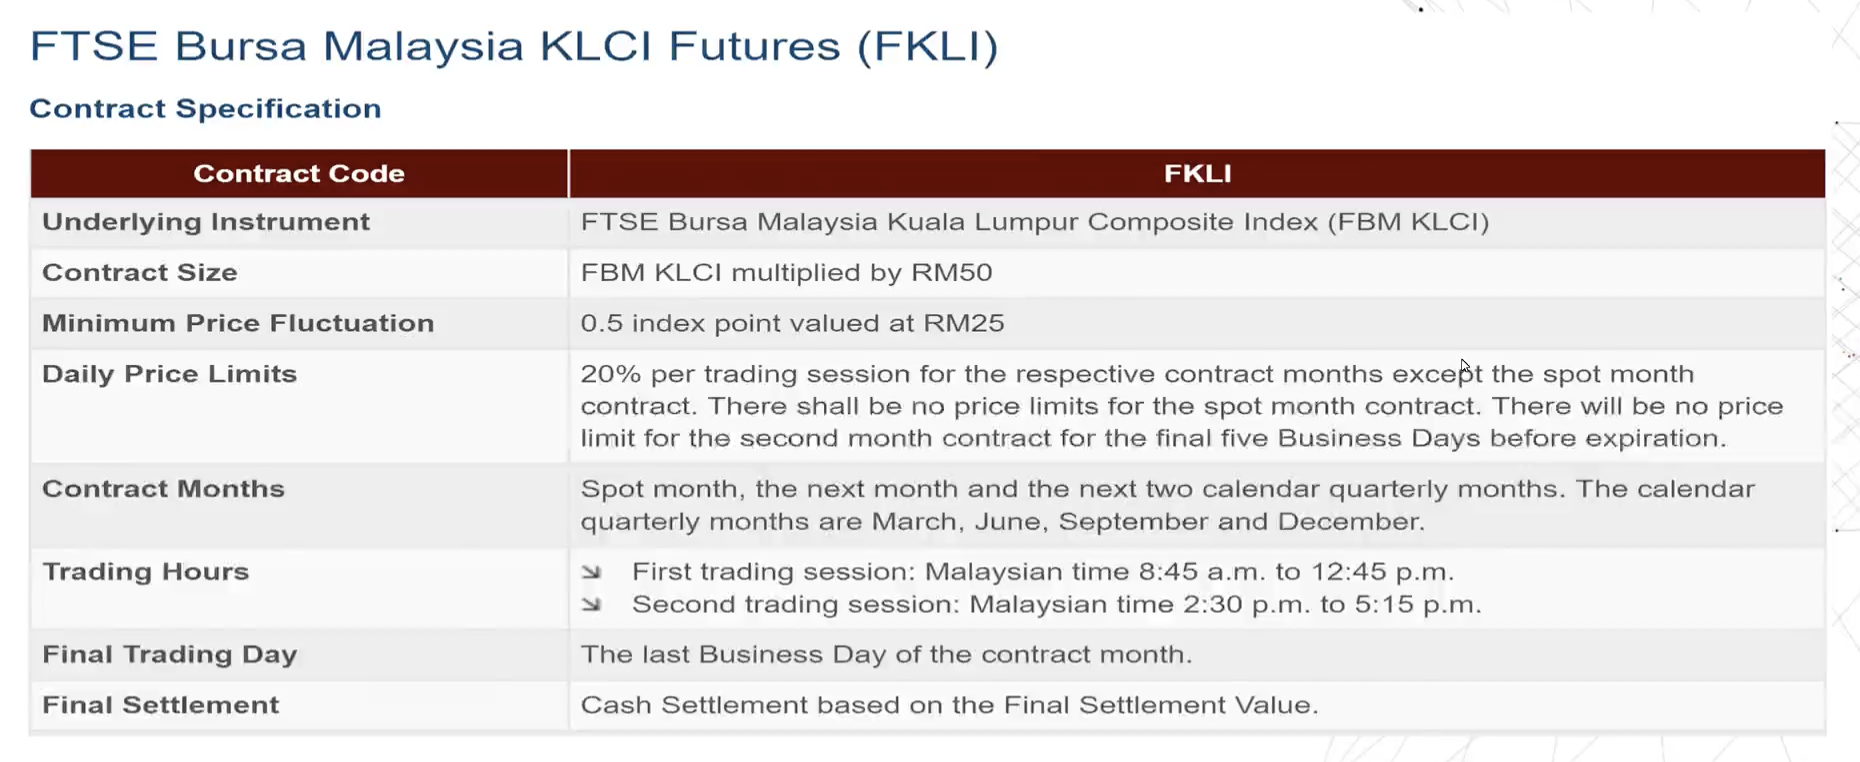 Futures 101: Five Things You Need to Know About Futures Contracts in Malaysia